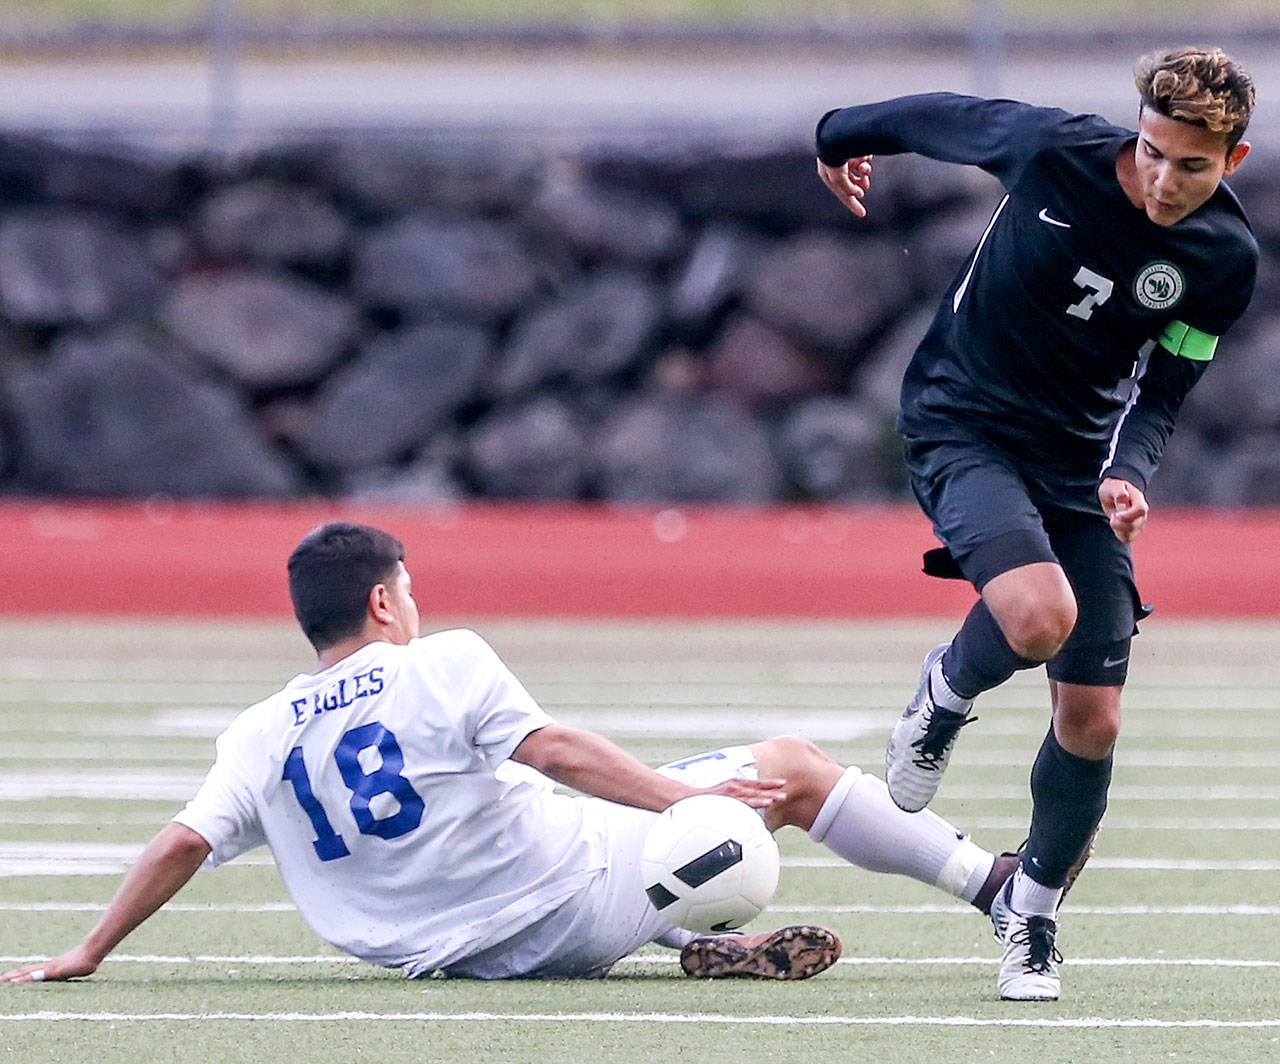 Jackson's Kevin Giessler (right) avoids a tackle attempt by Federal Way's David Sanchez-Benetiz during a game on May 17, 2019, at Everett Memorial Stadium. (Kevin Clark / The Herald)